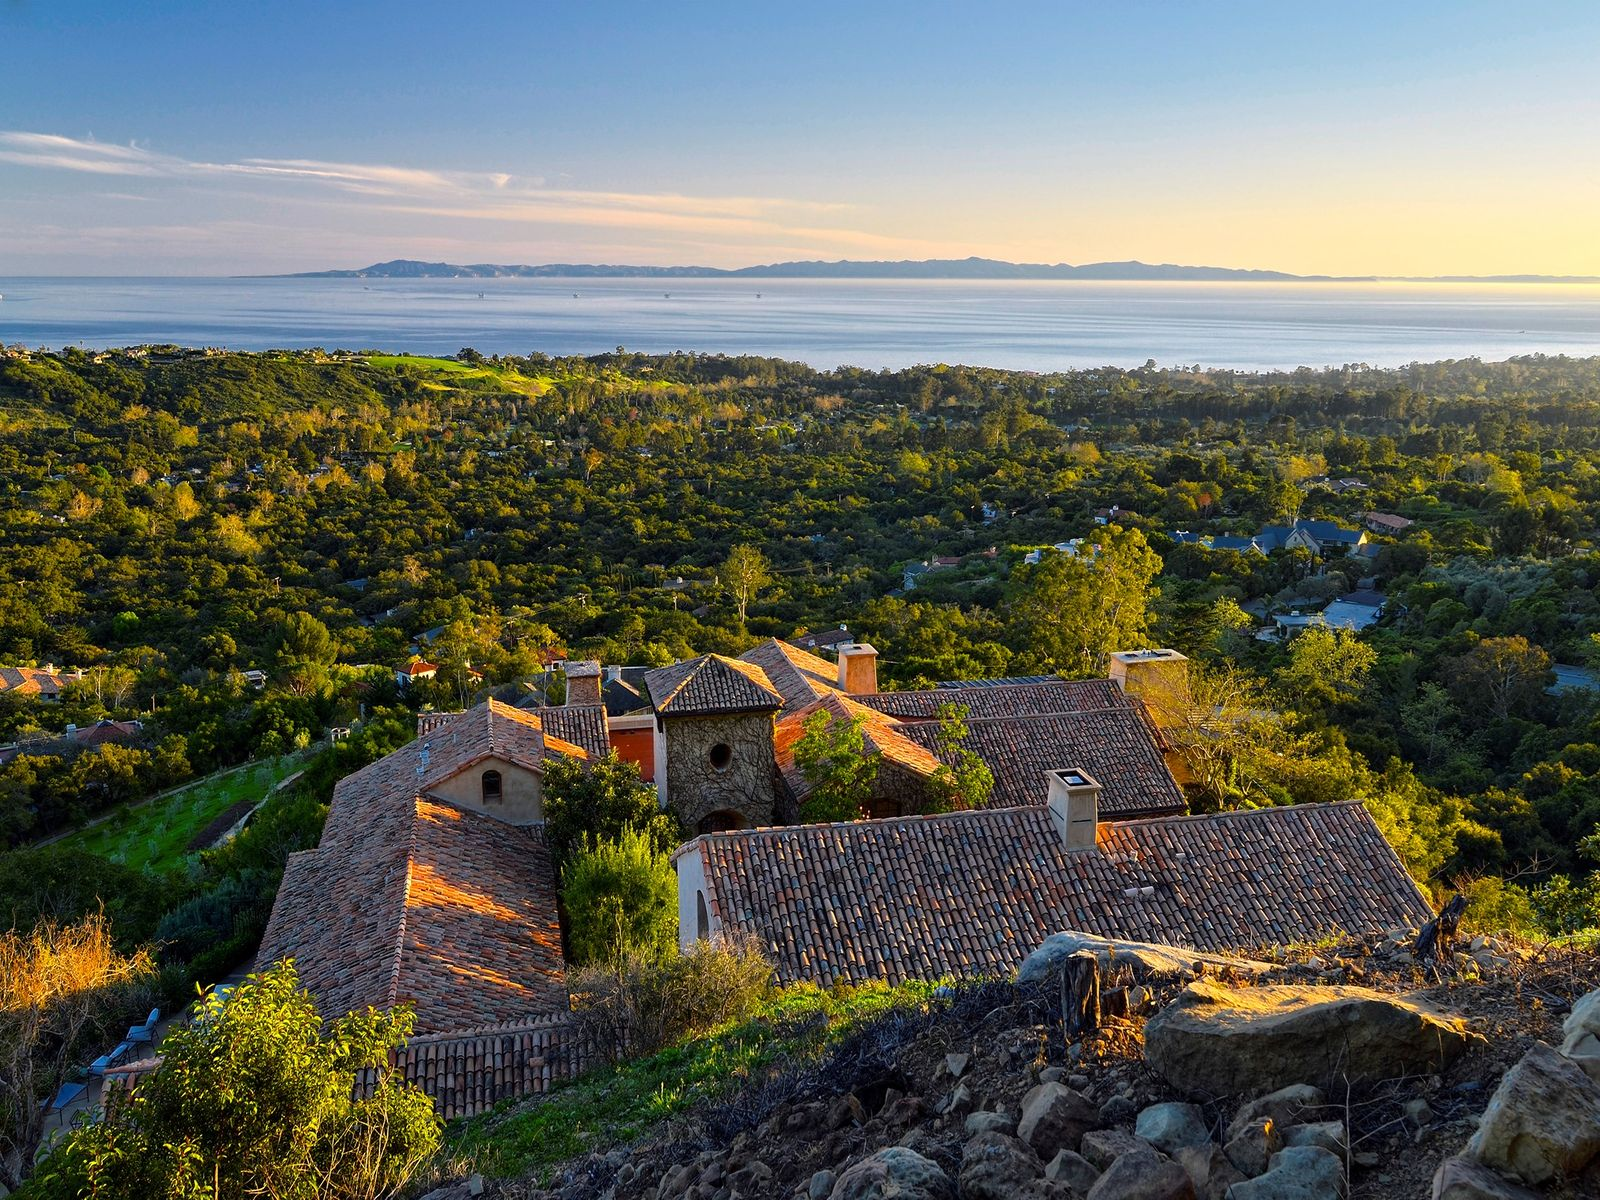 Ocean View Estate, Santa Barbara CA Single Family Home - Santa Barbara Real Estate